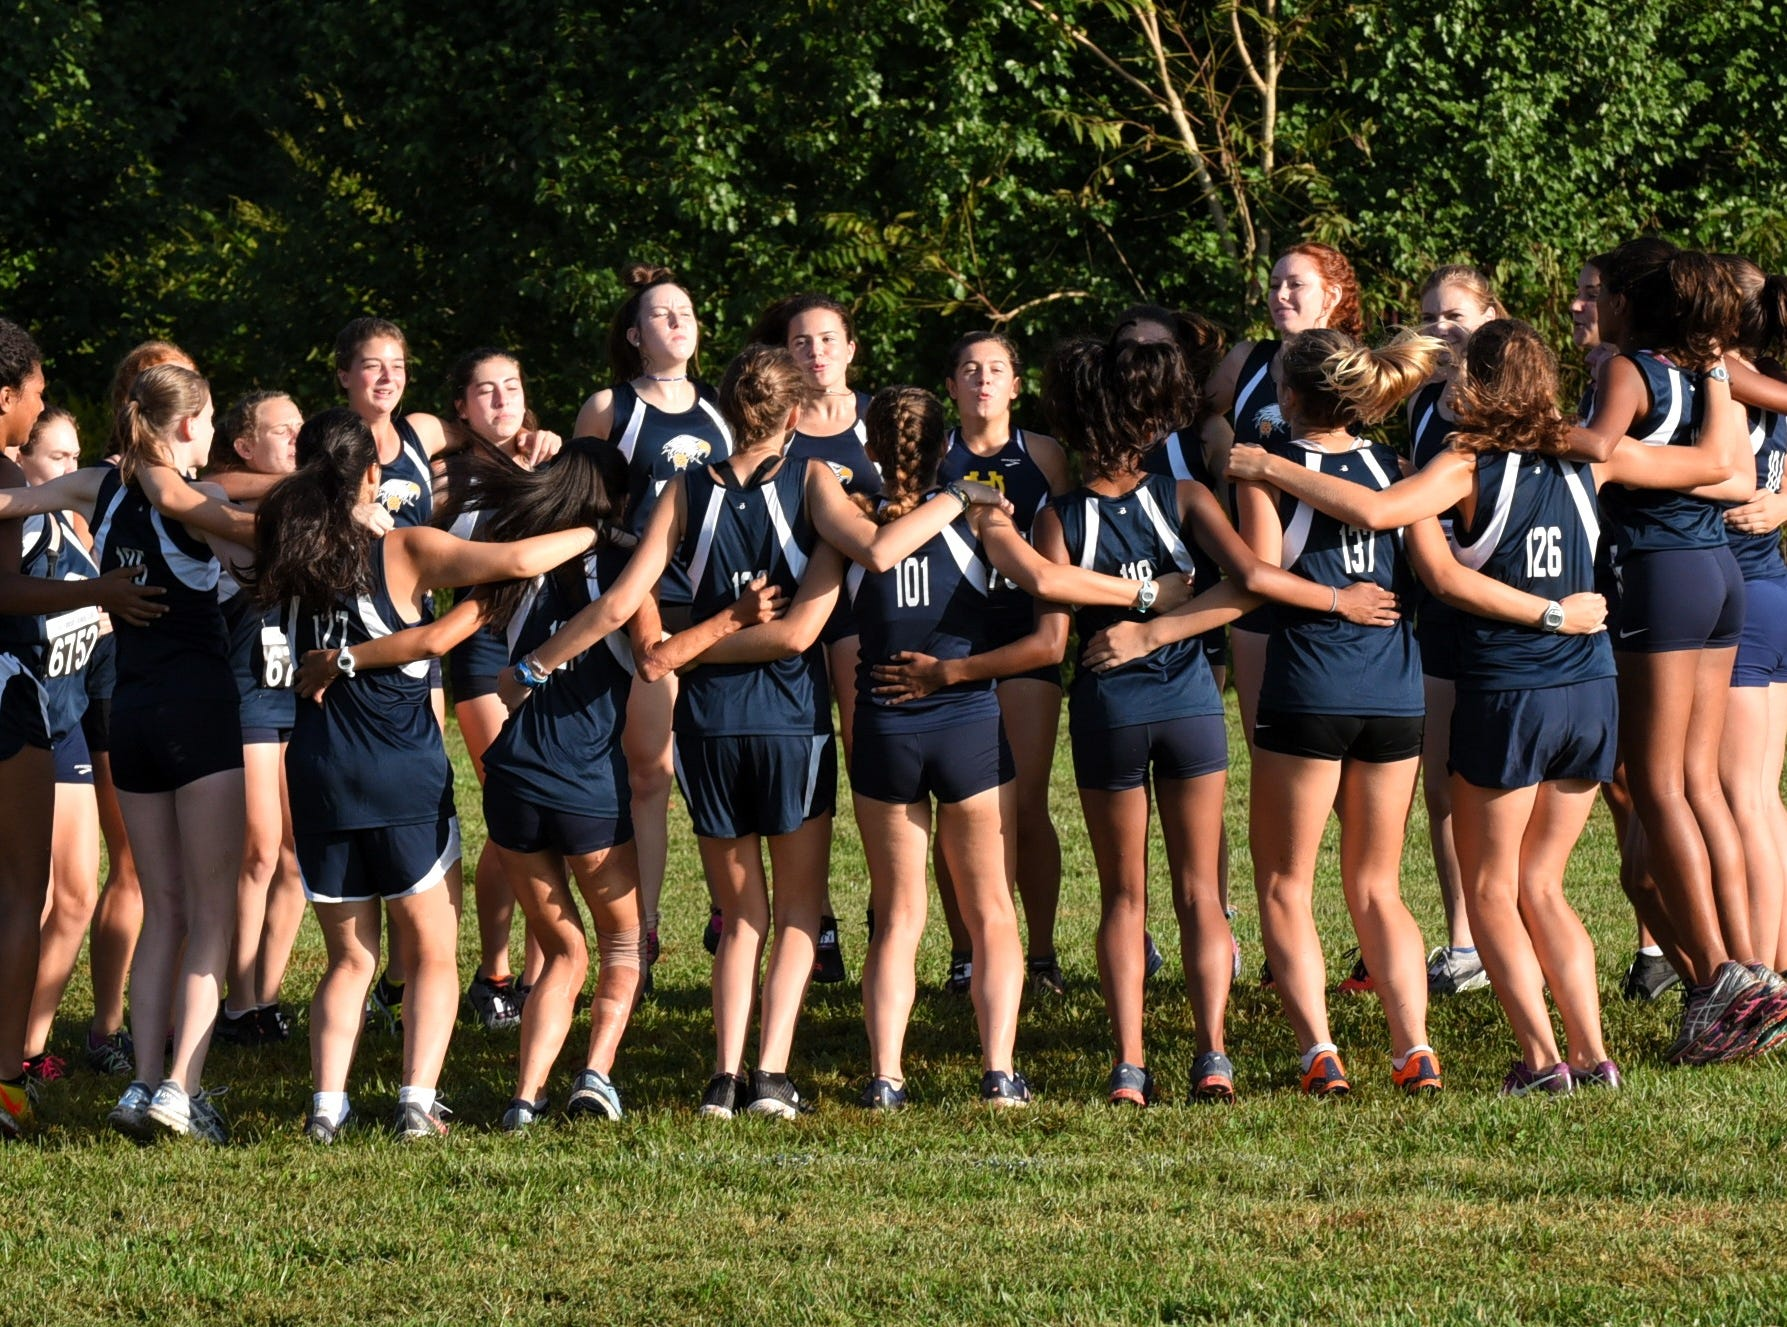 Walnuts Hills lady runners get hyped prior to running at the 2018 Milford Cross Country Invitational, Sept. 15, 2018.